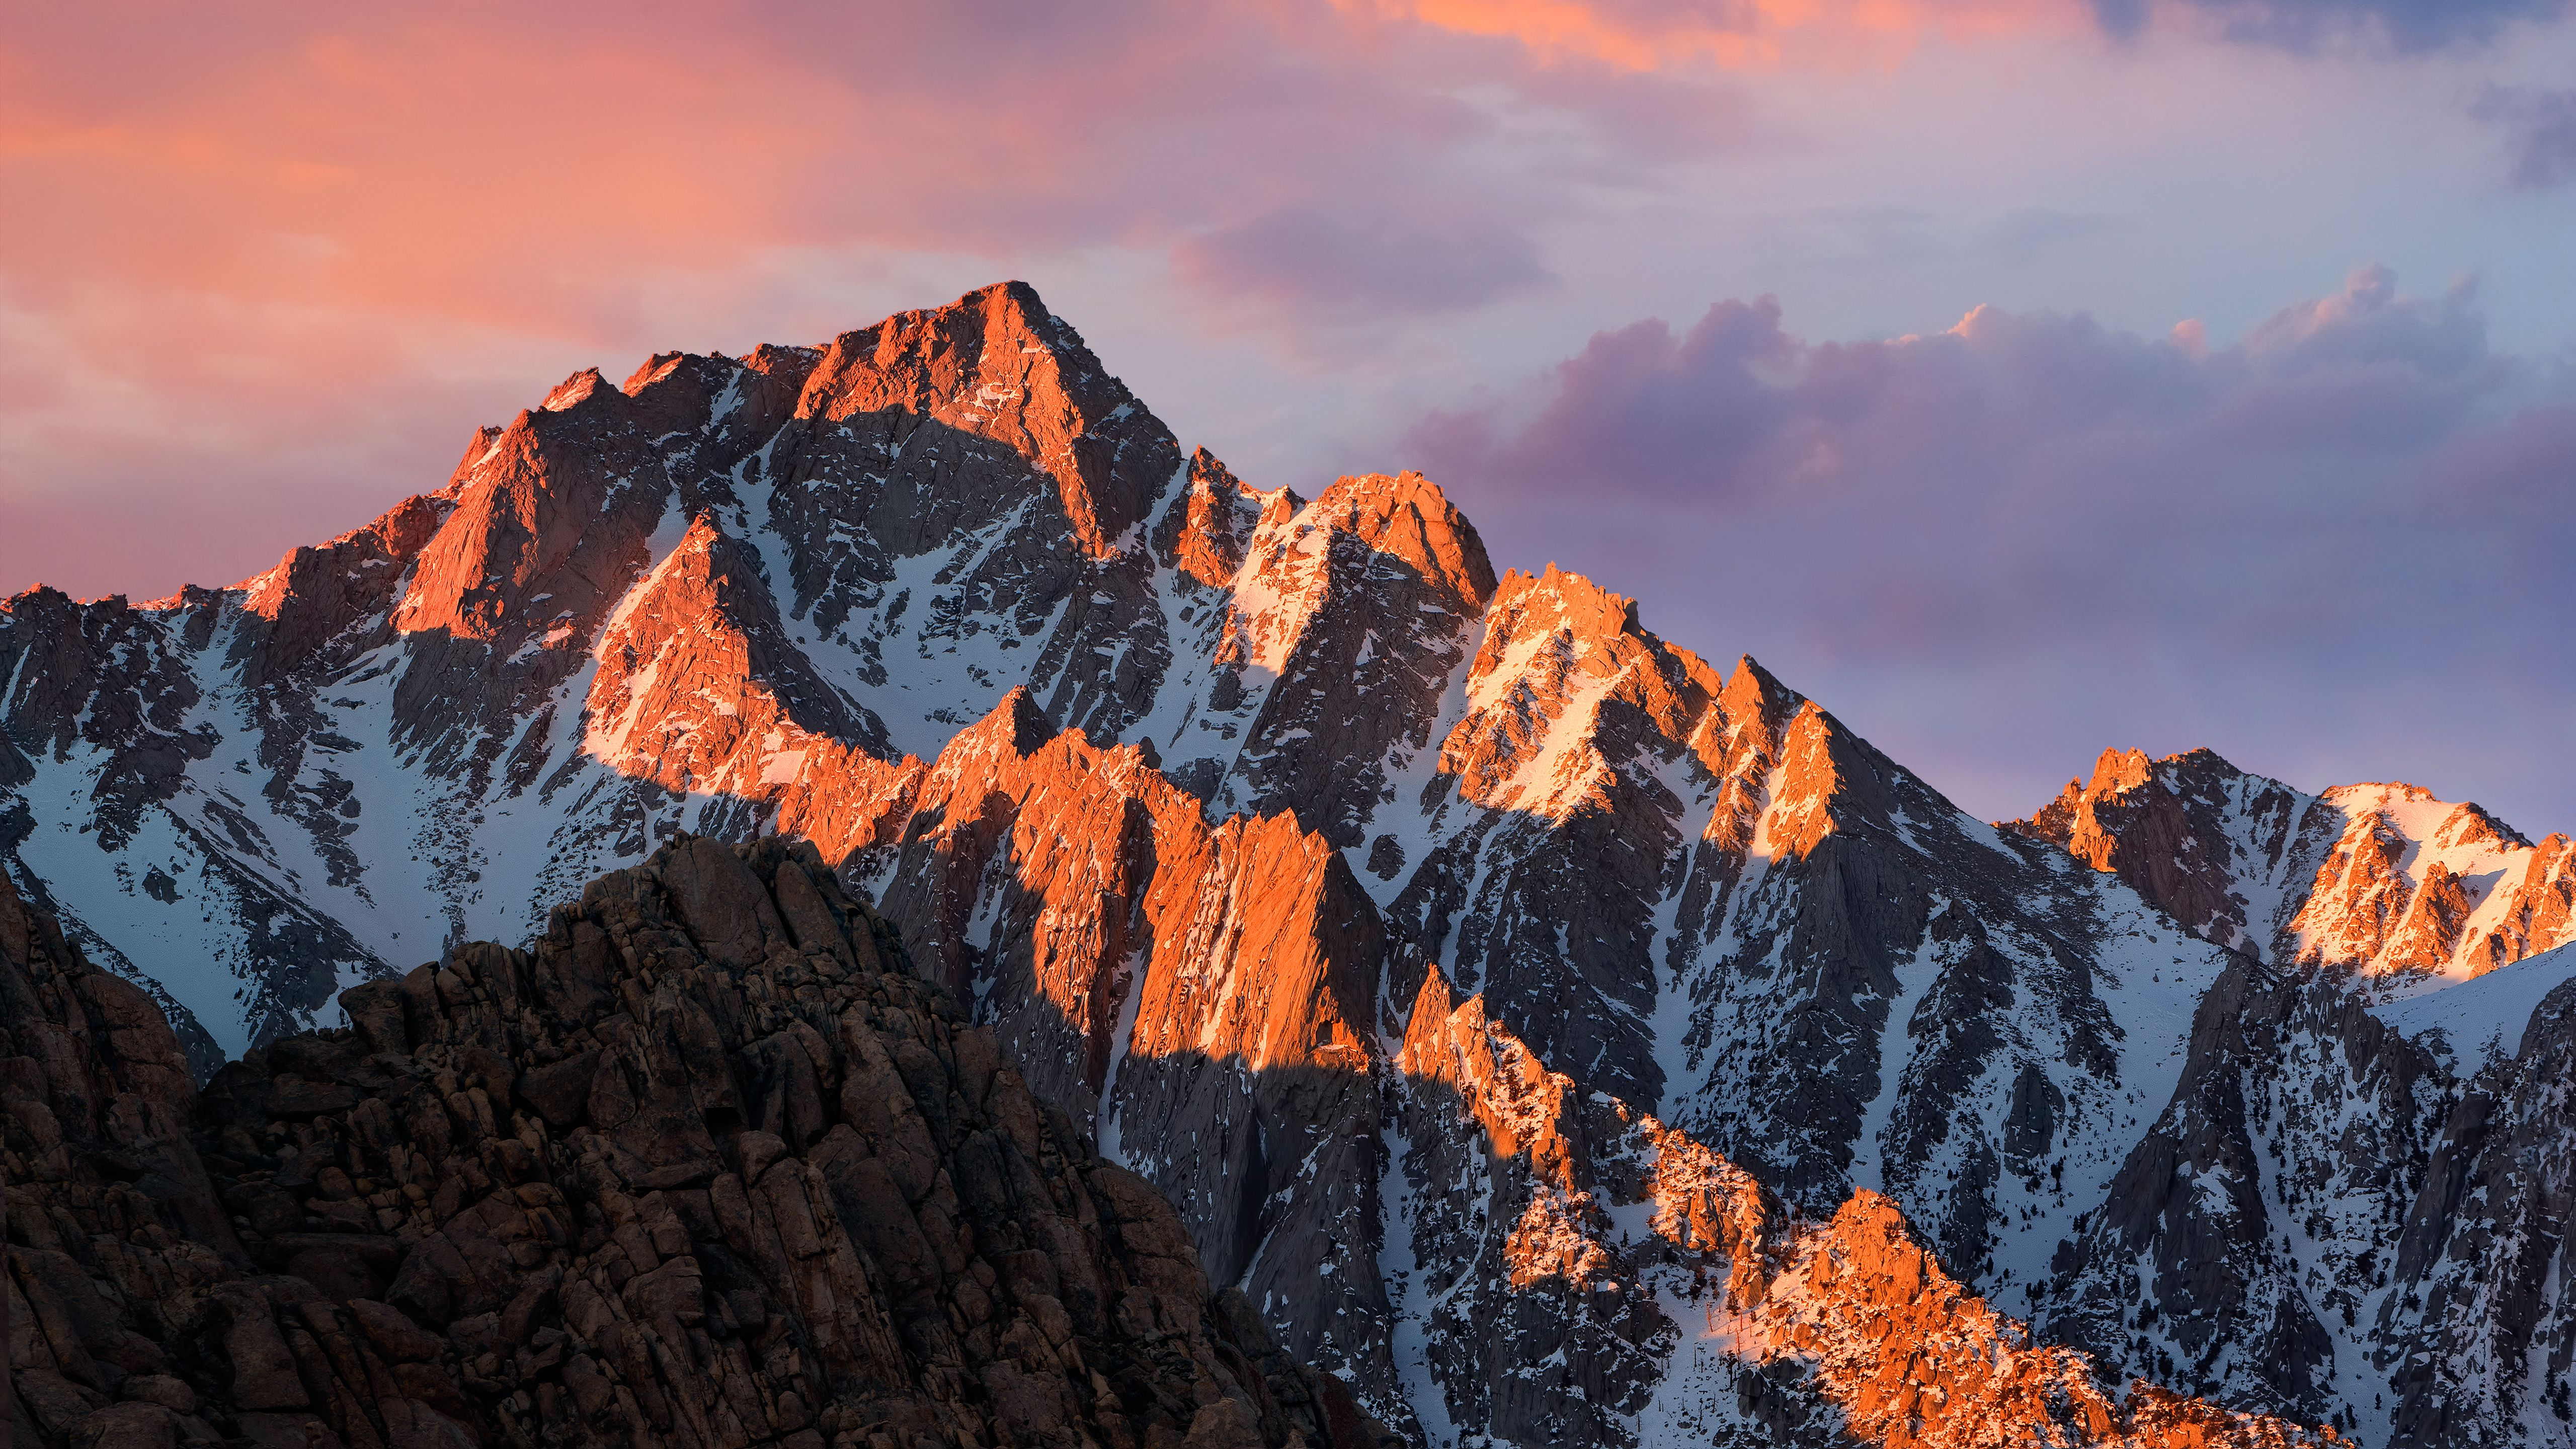 5120x2880 Every Default macOS Wallpaper – in Glorious 5K Resolution ...